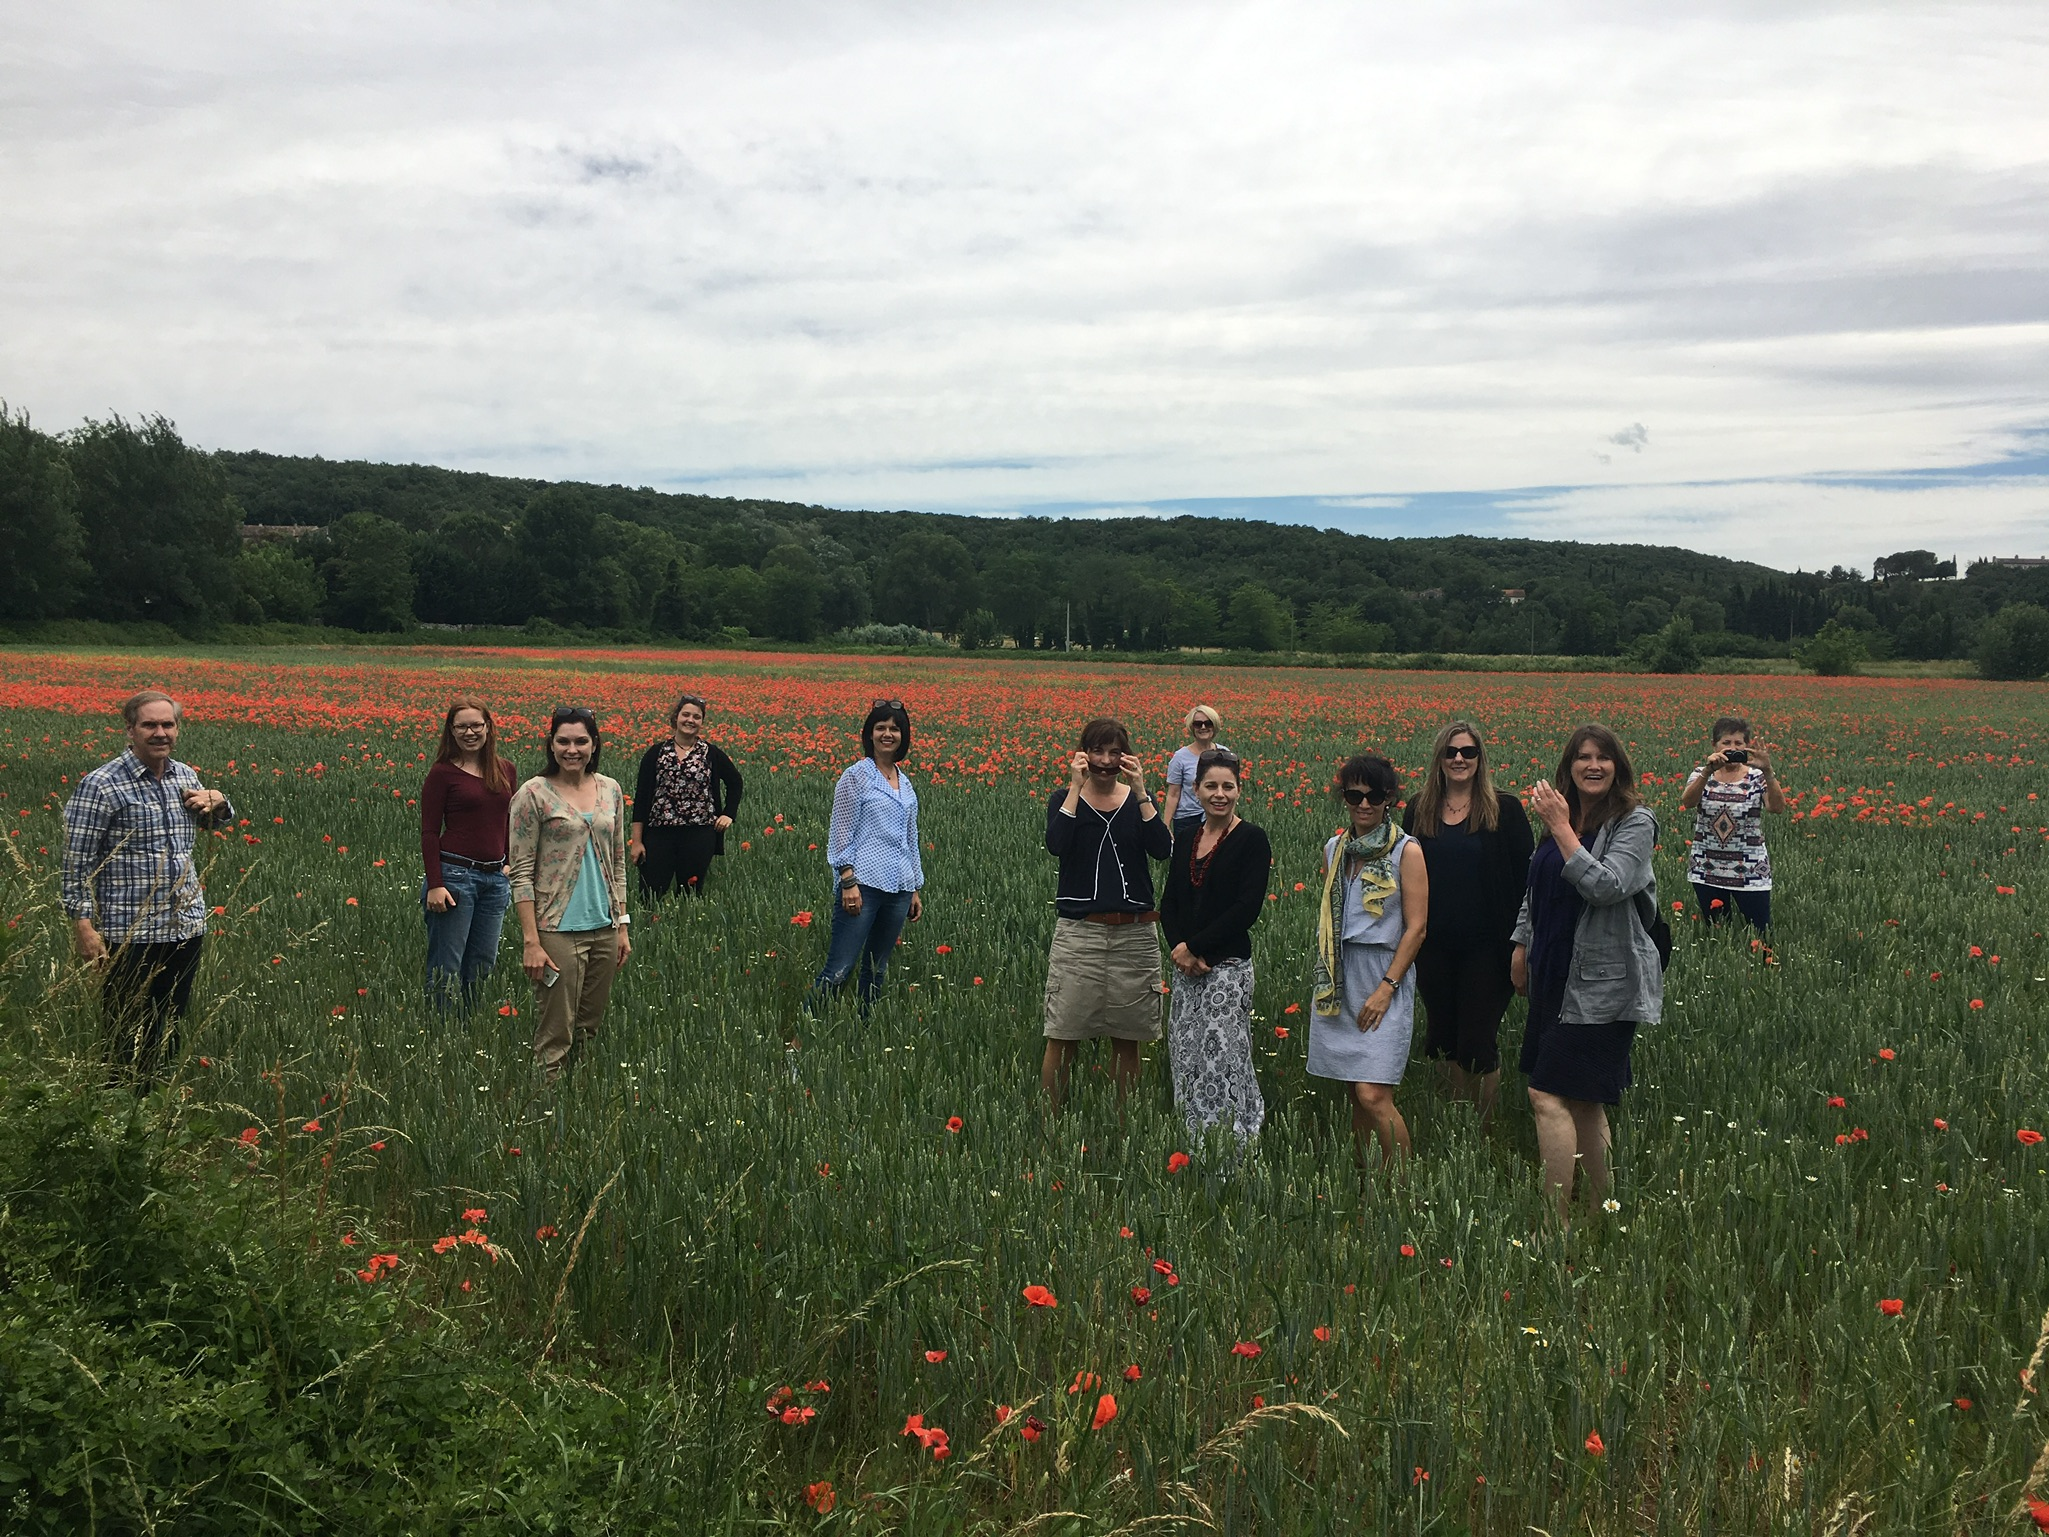 fun in the poppy field